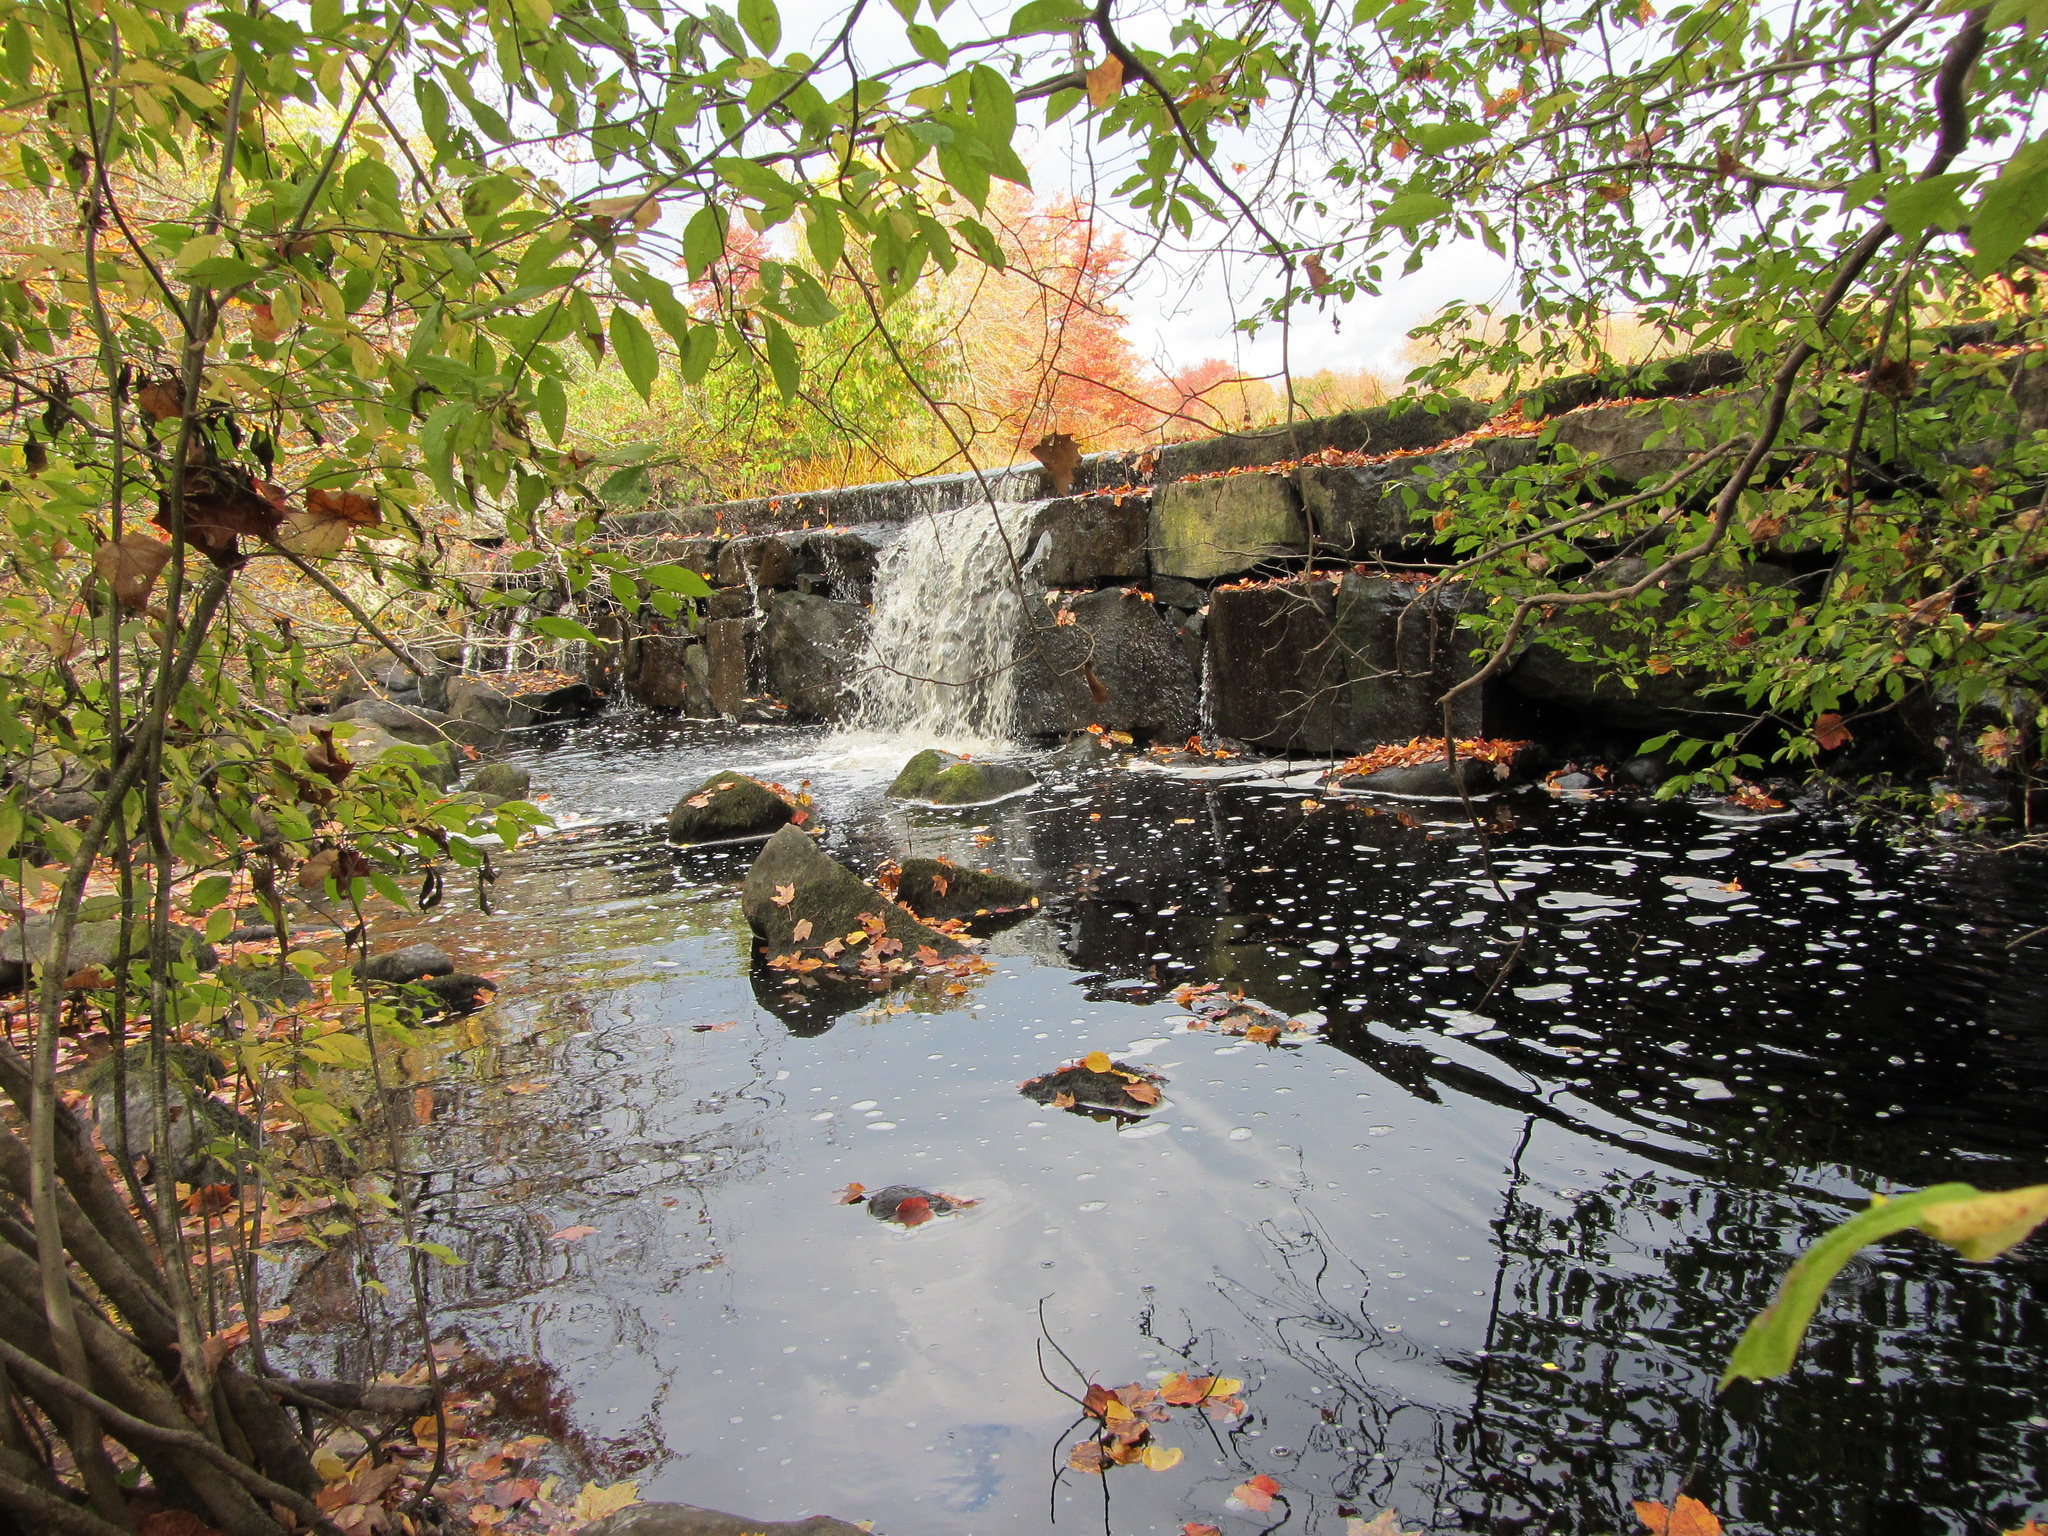 Hyde Pond Dam - before removal by U. S. Fish and Wildlife Service - Northeast Region, on Flickr